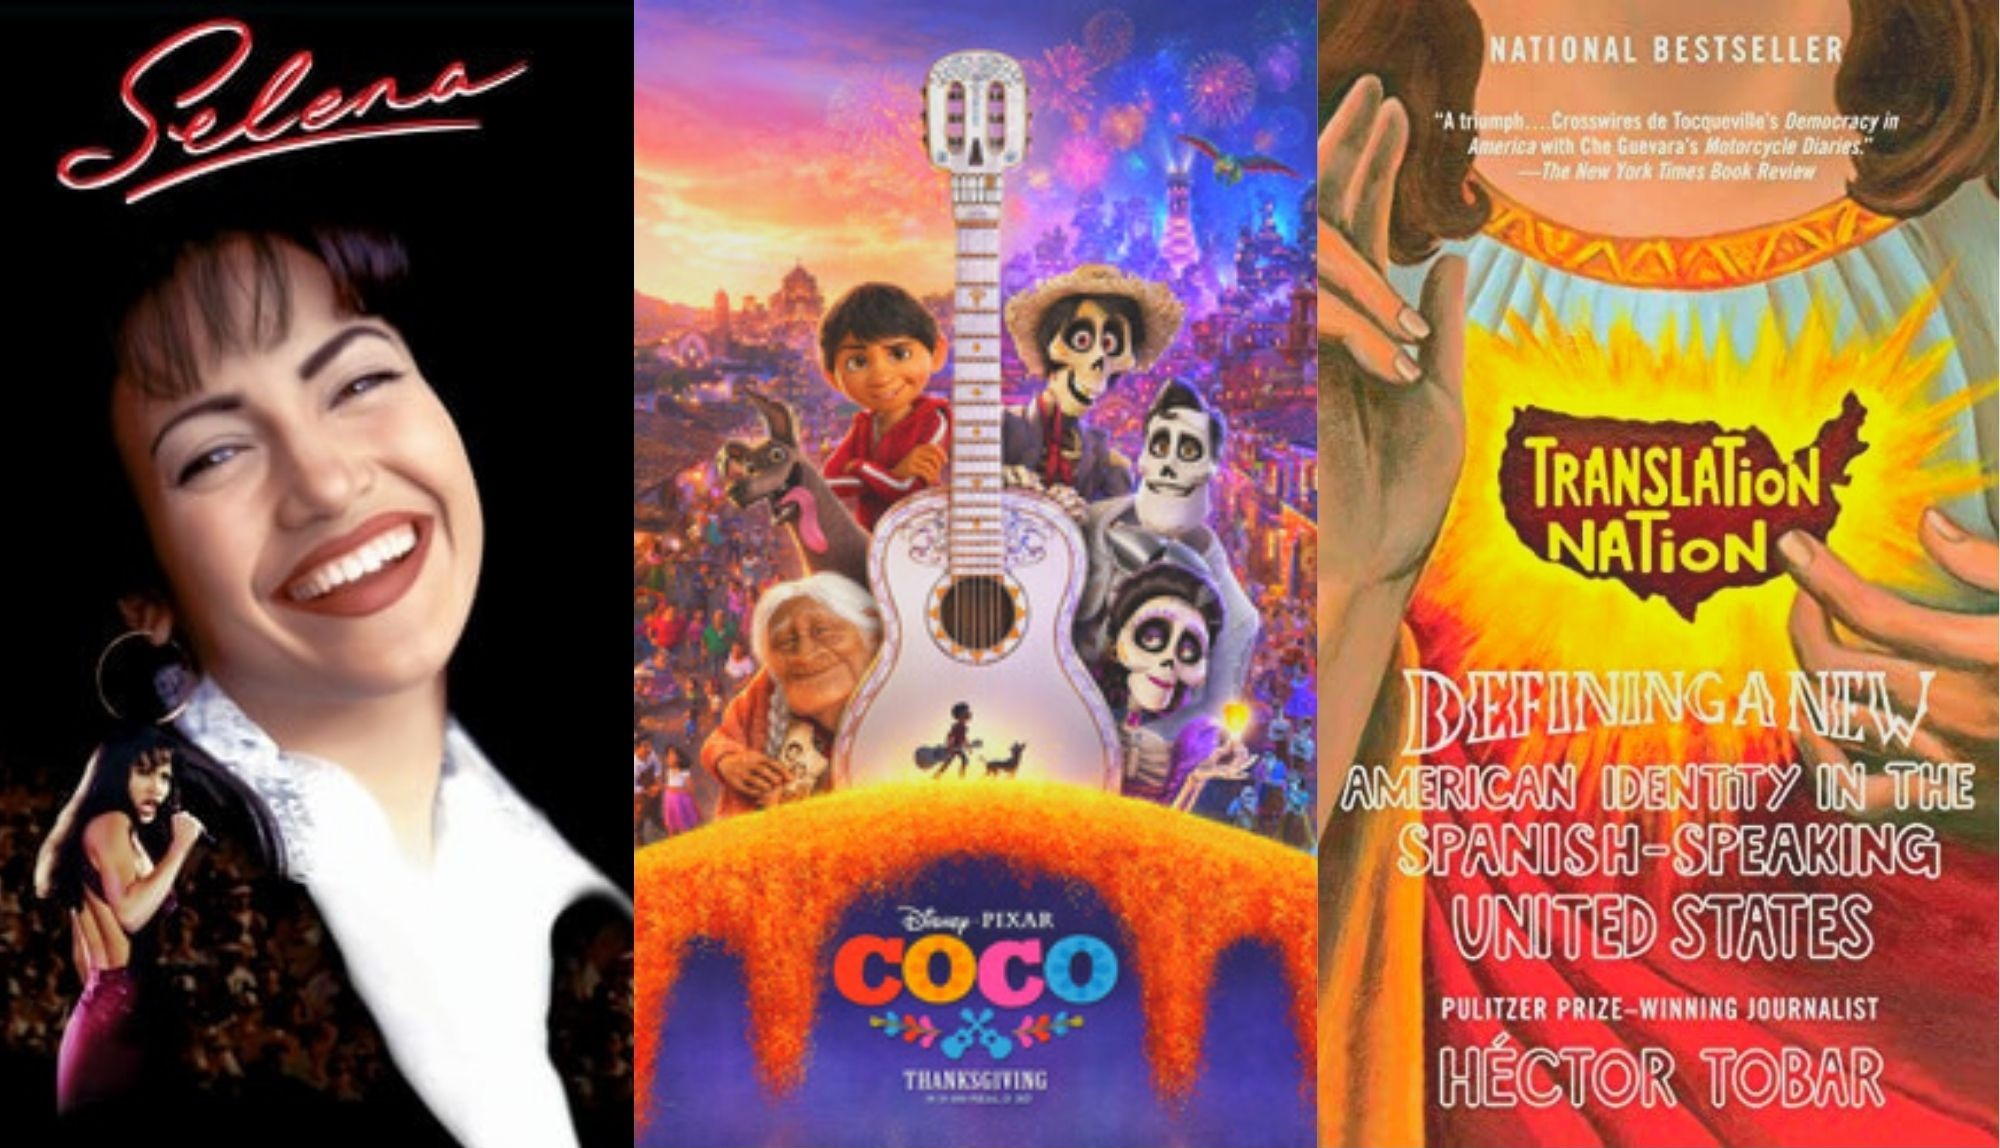 covers of movies selena coco and book cover translation nation